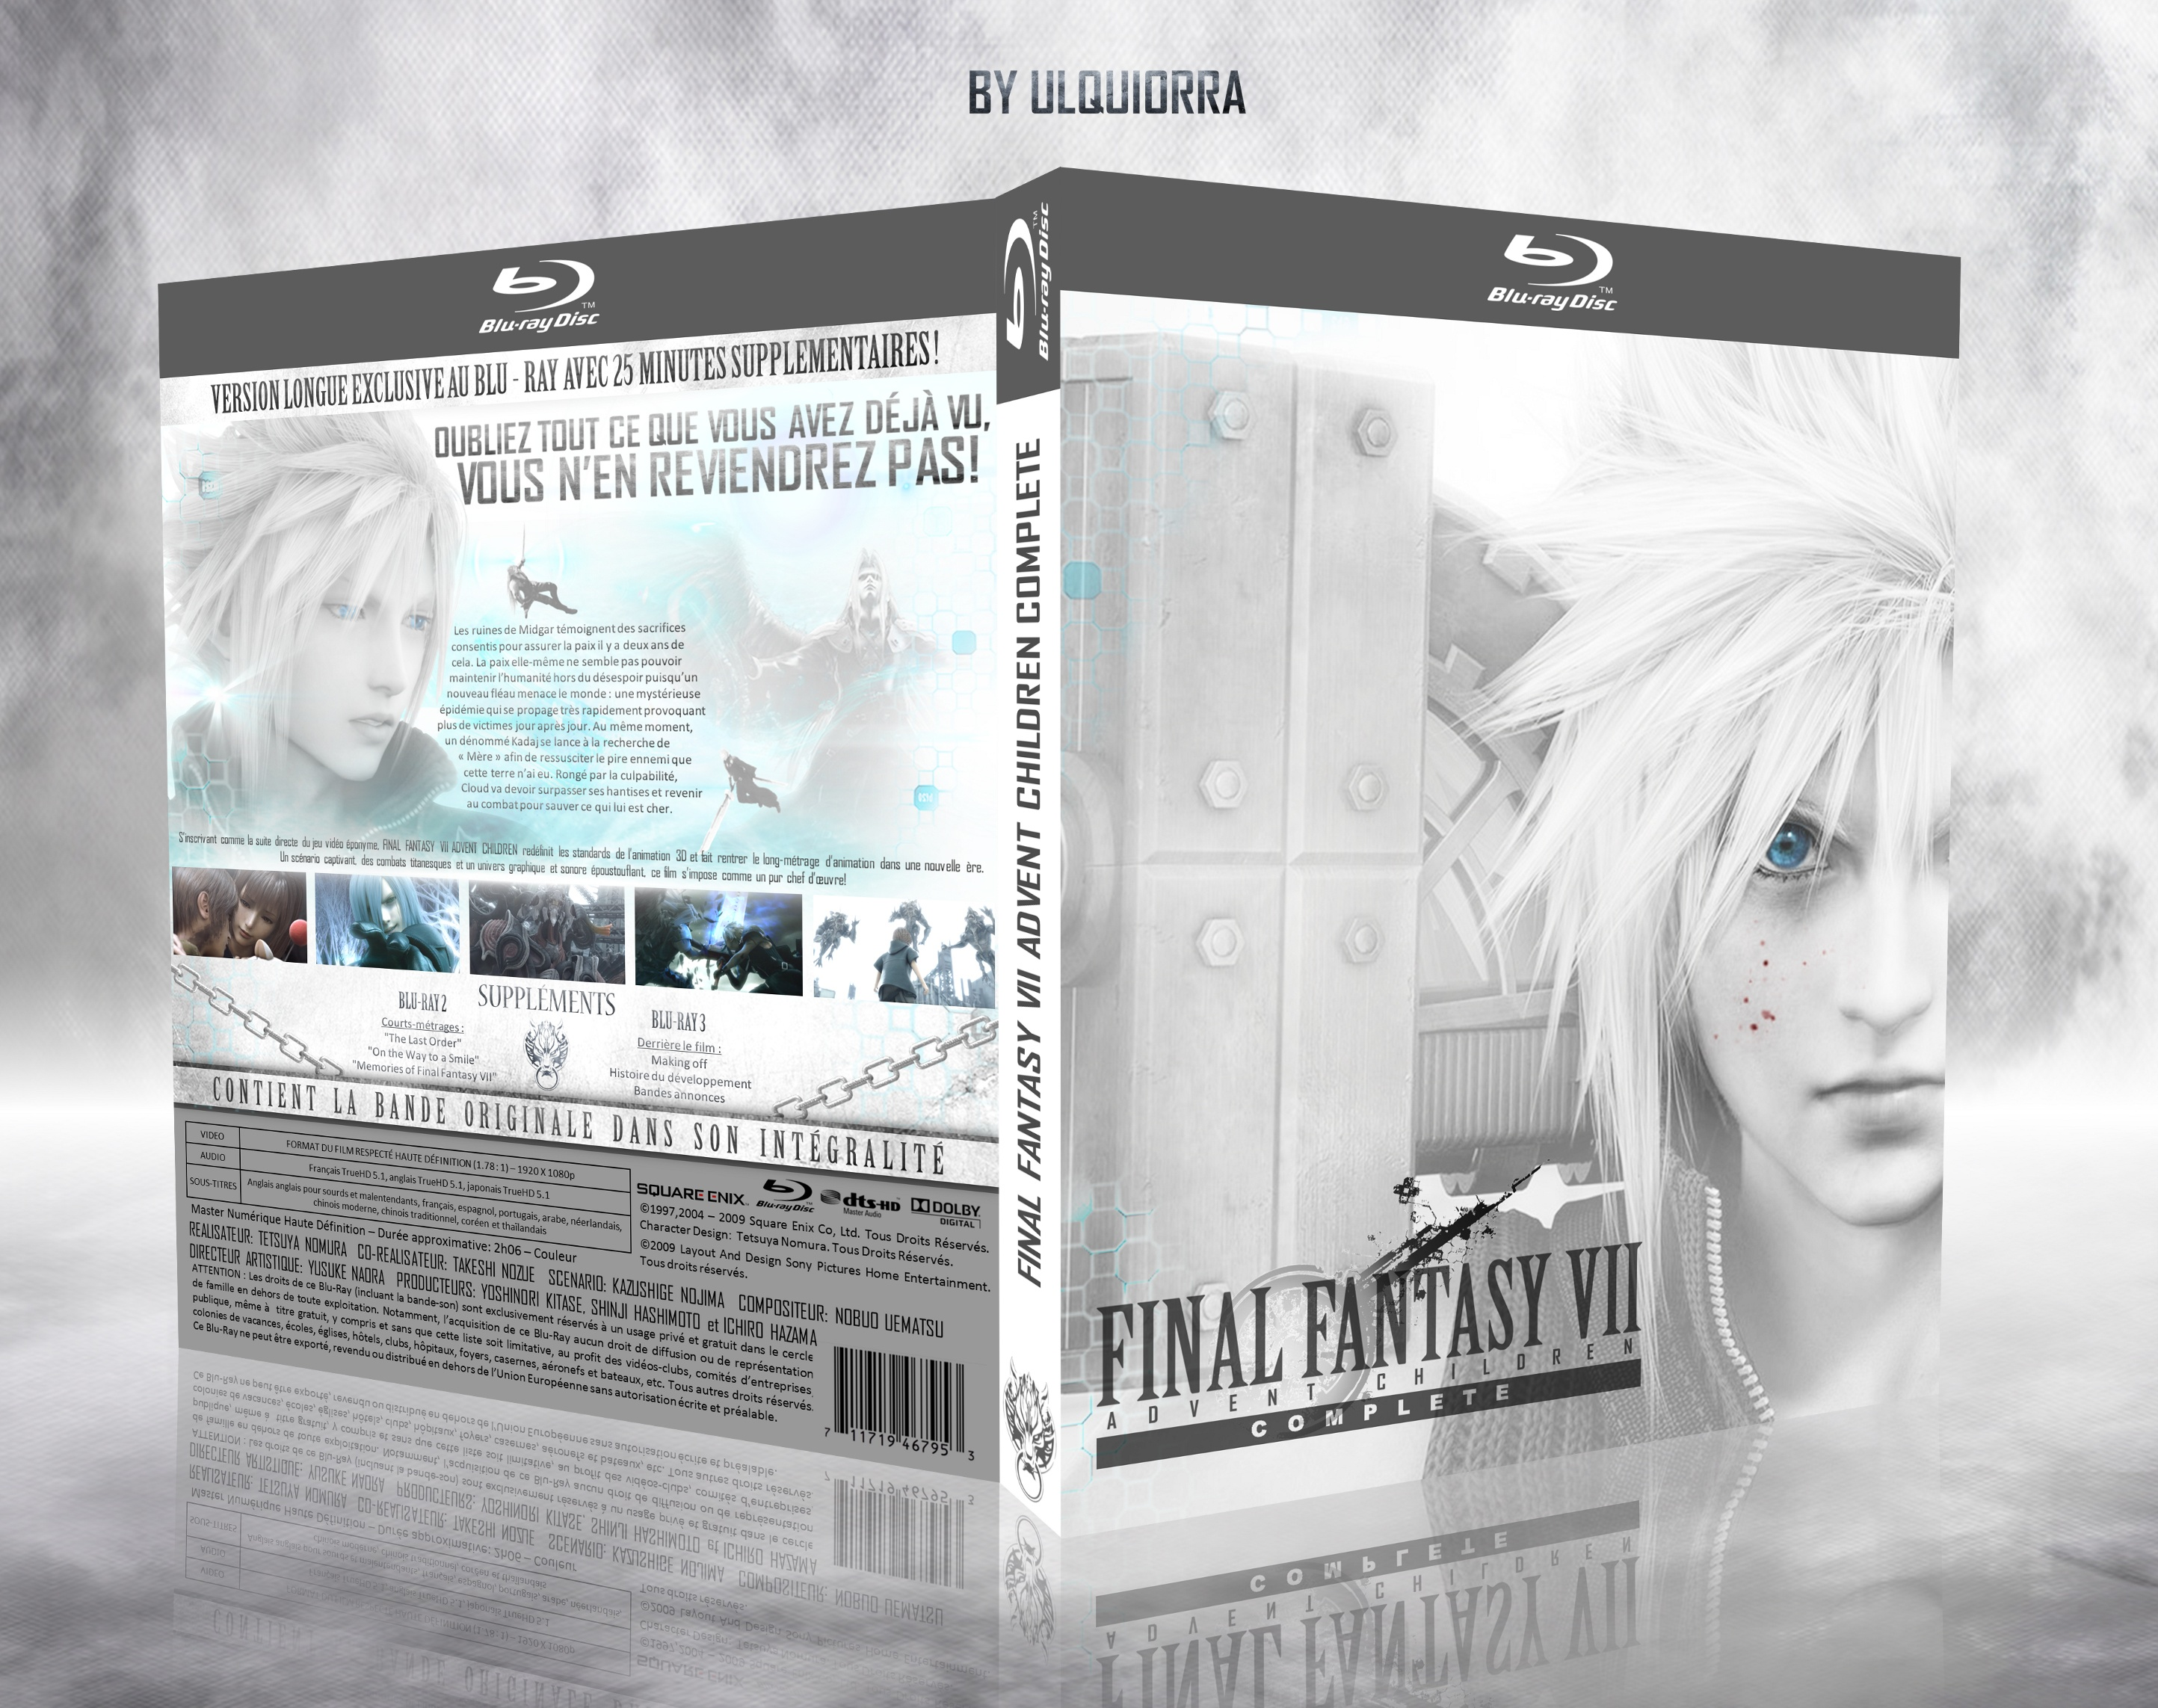 Final Fantasy VII advent children complete box cover